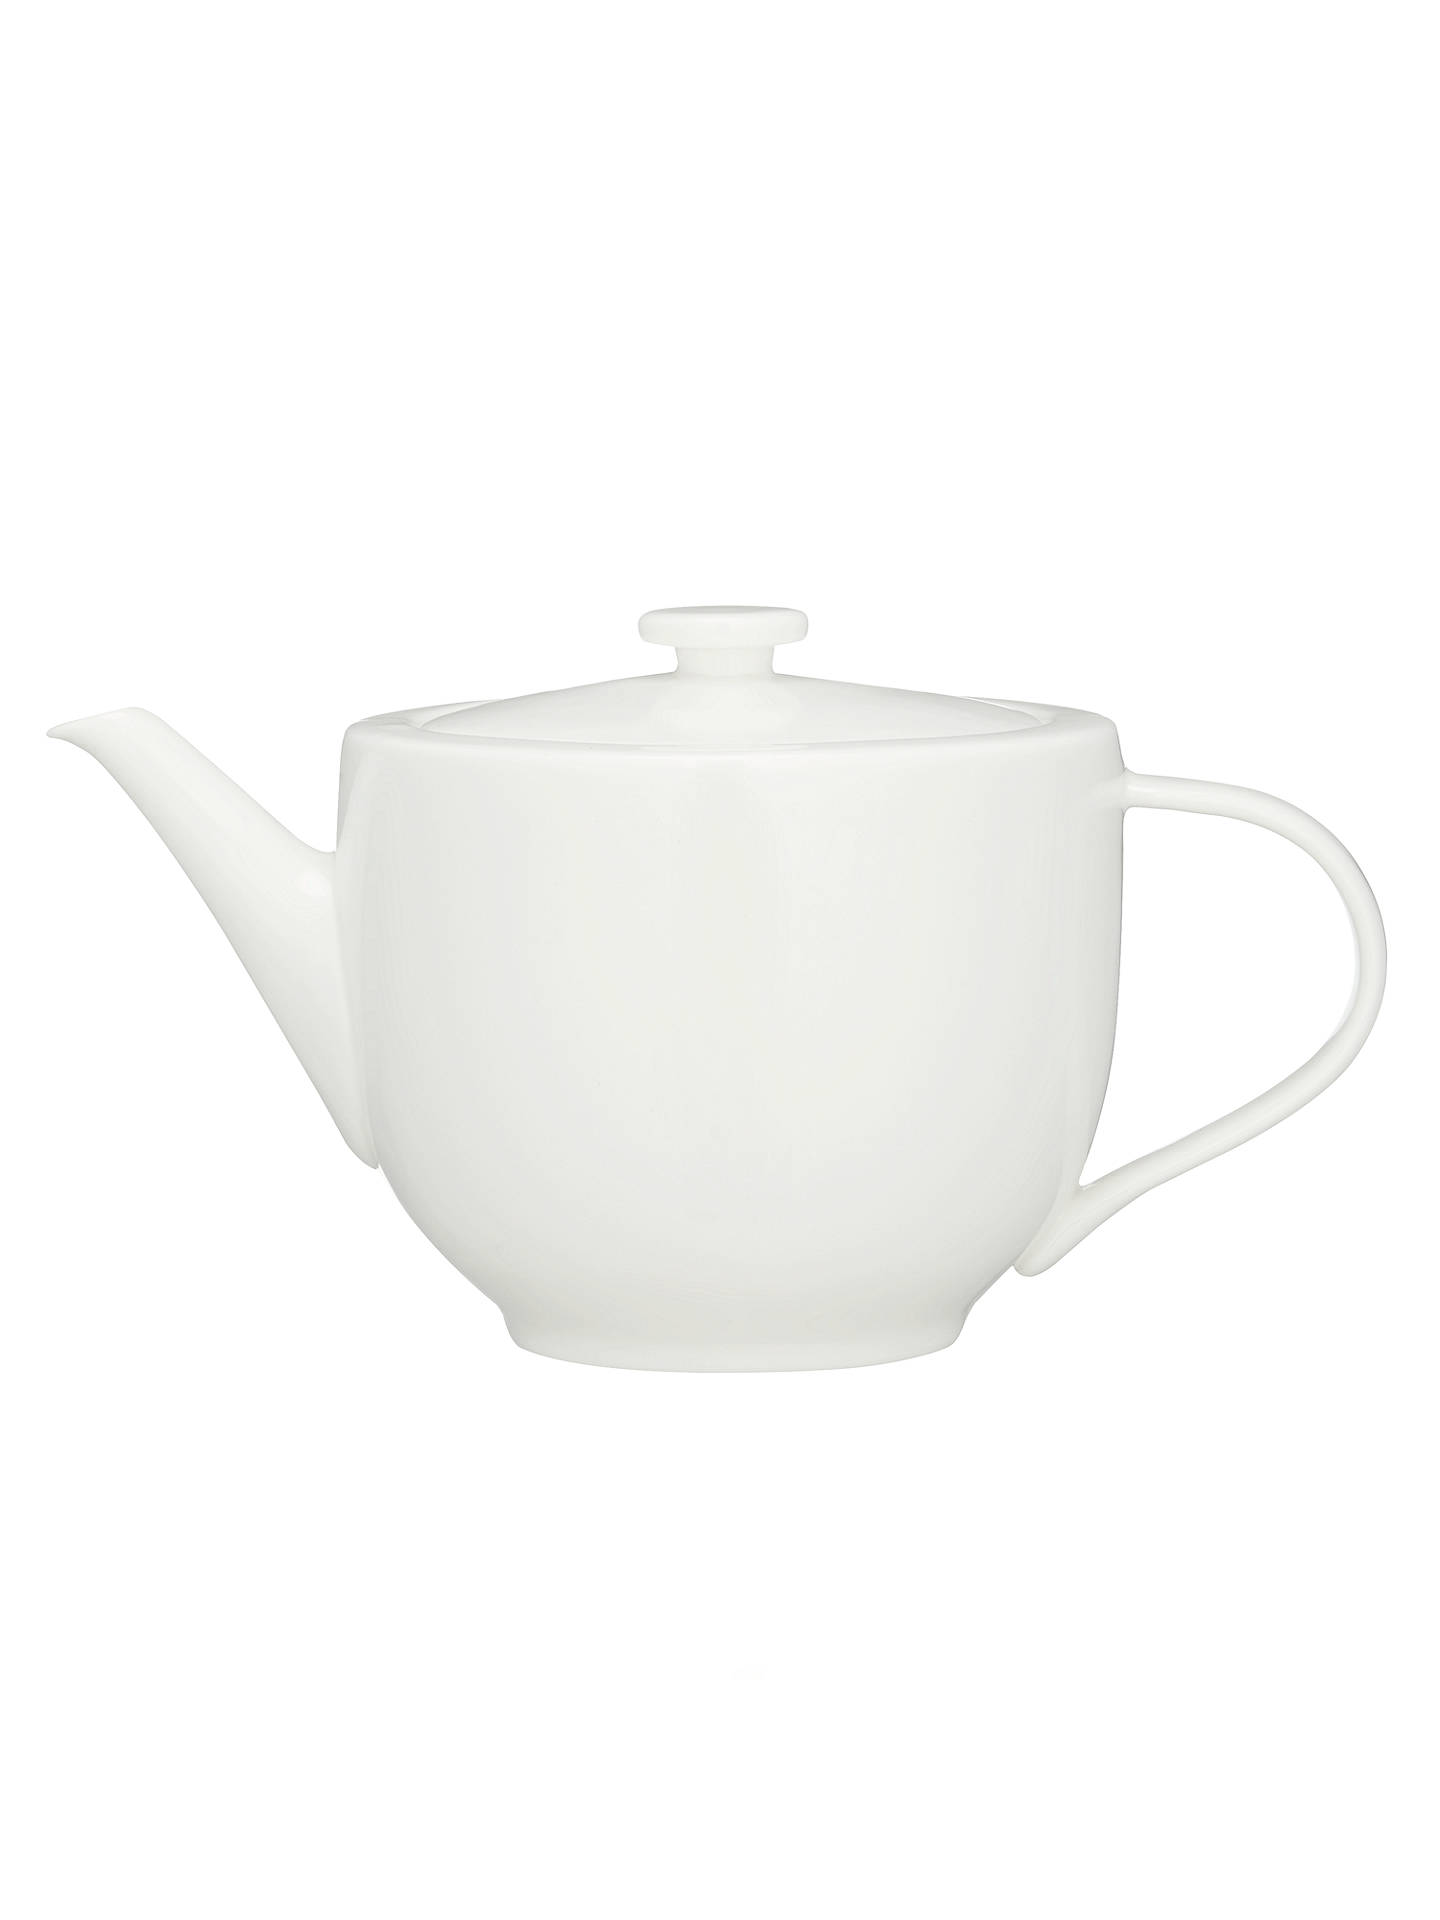 BuyJohn Lewis & Partners Contour Bone China 4 Cup Teapot, White, 1.1L Online at johnlewis.com